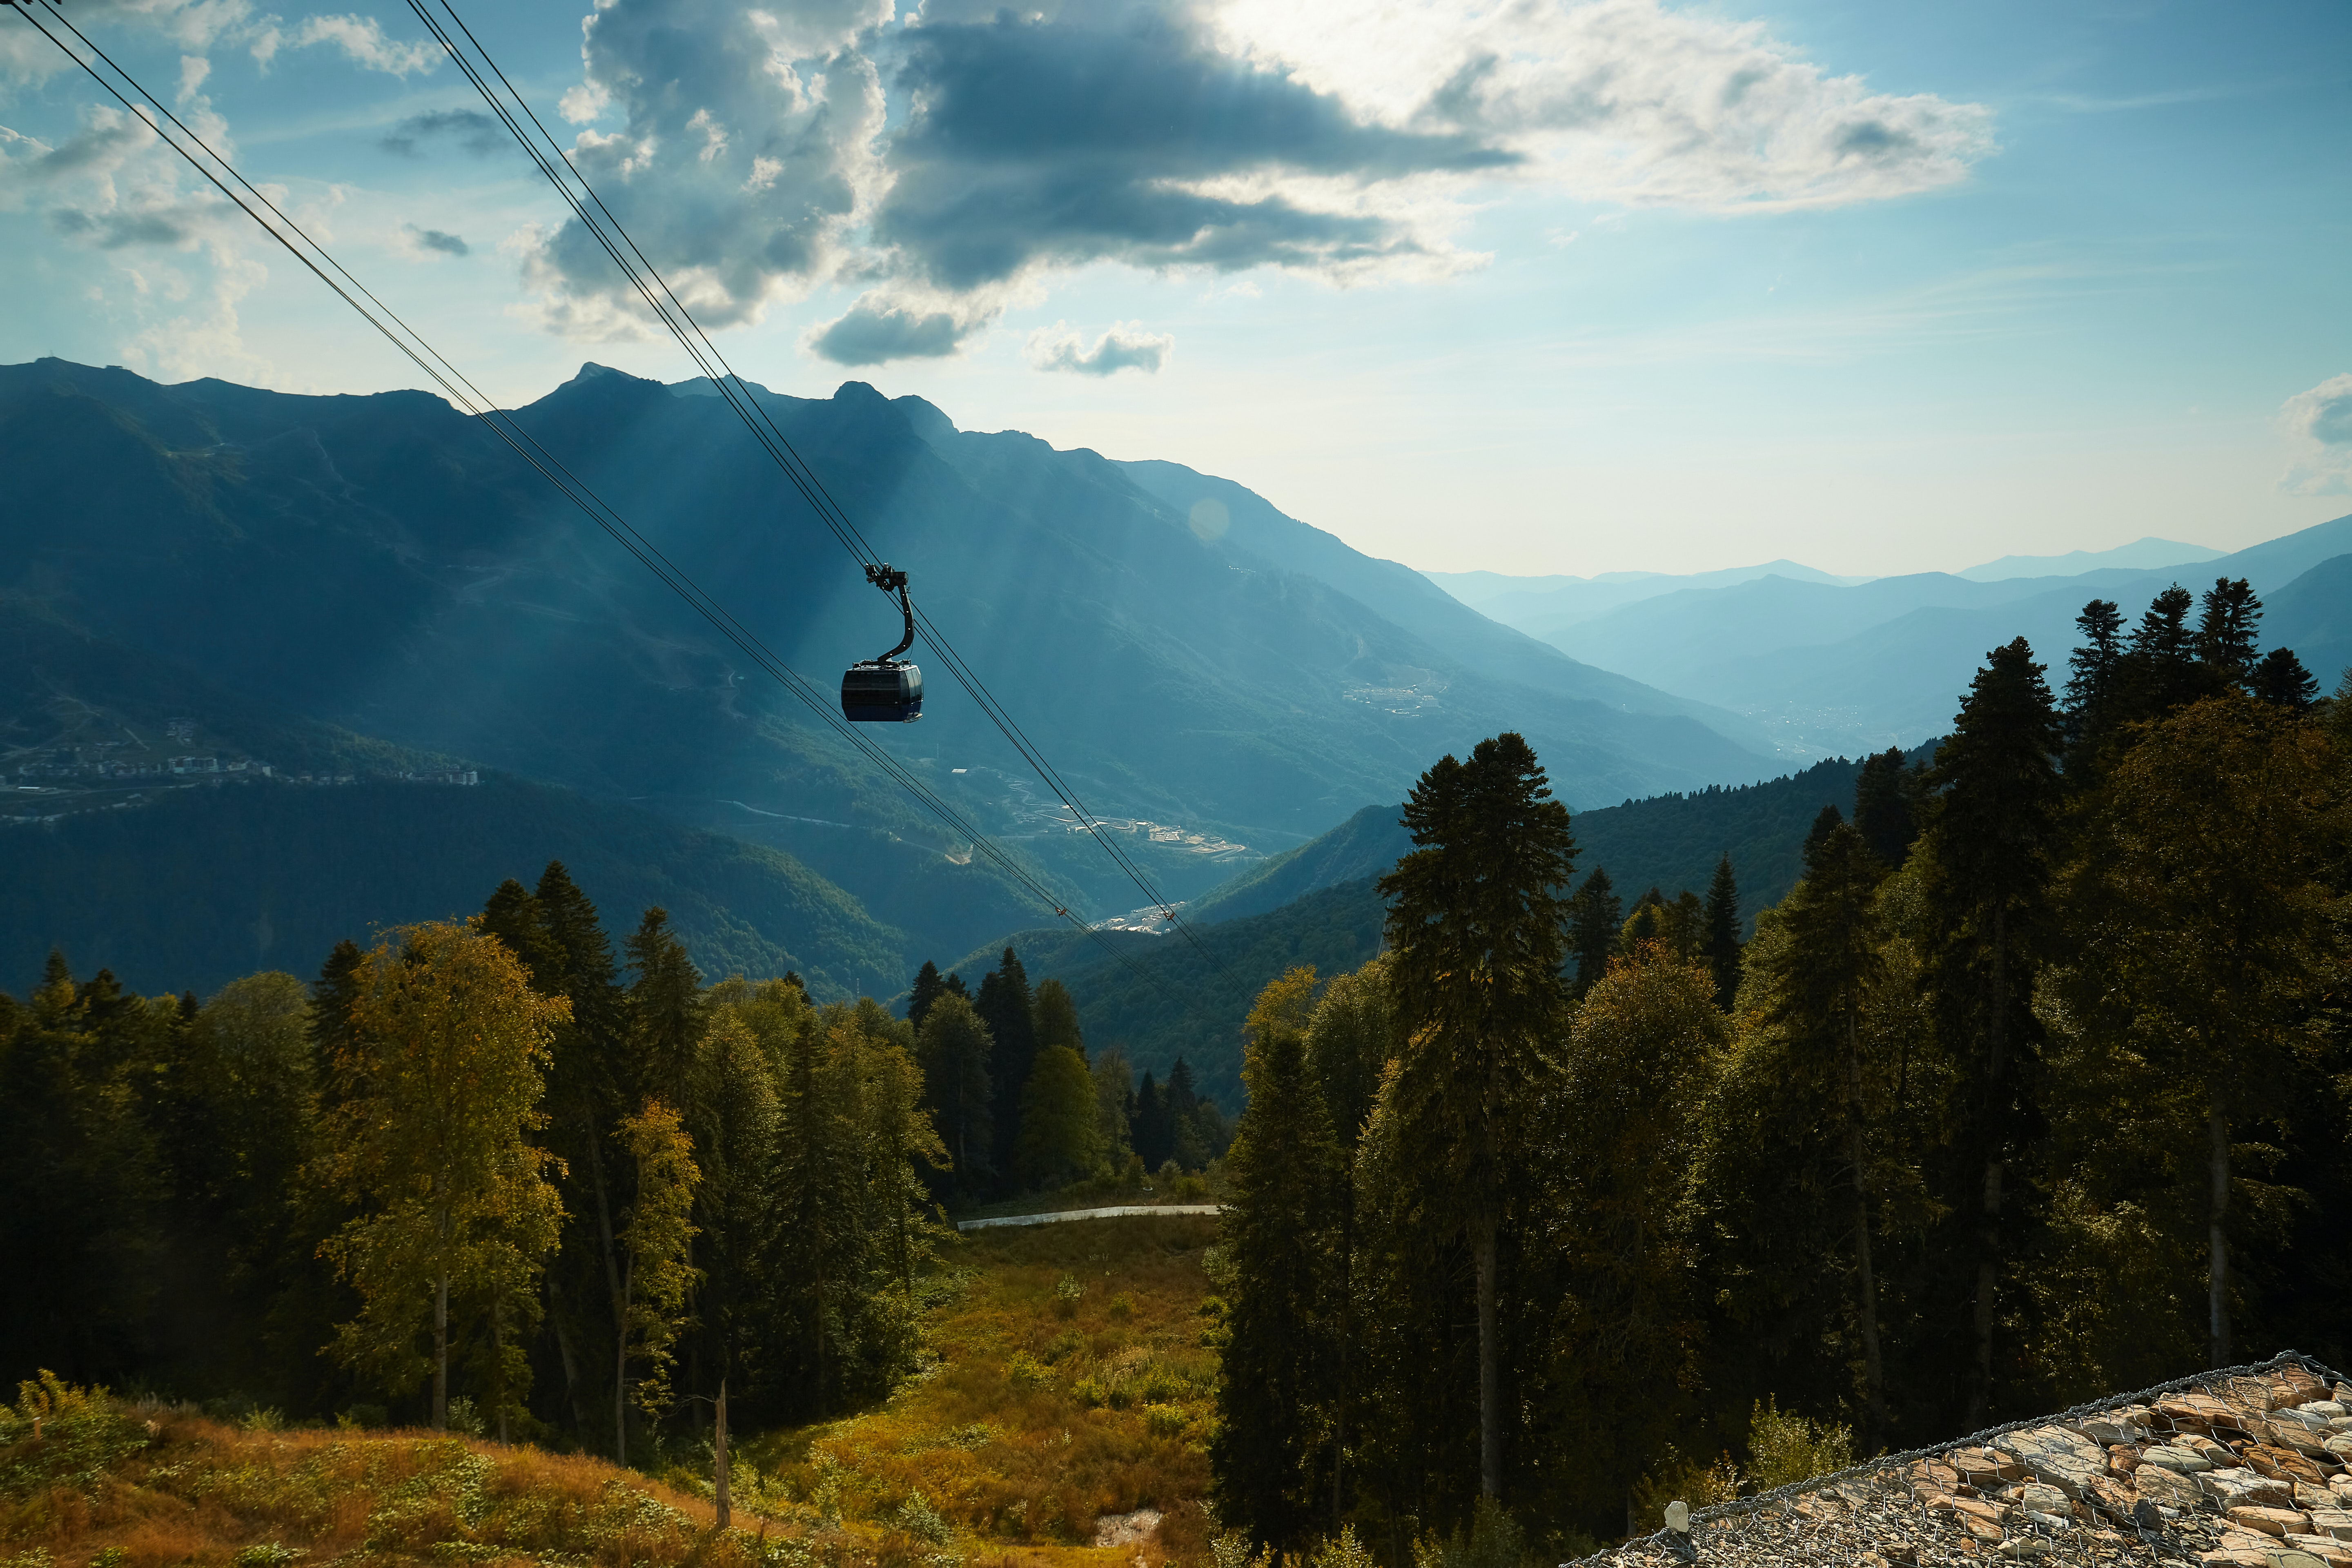 Take the Cable Car to Mürren